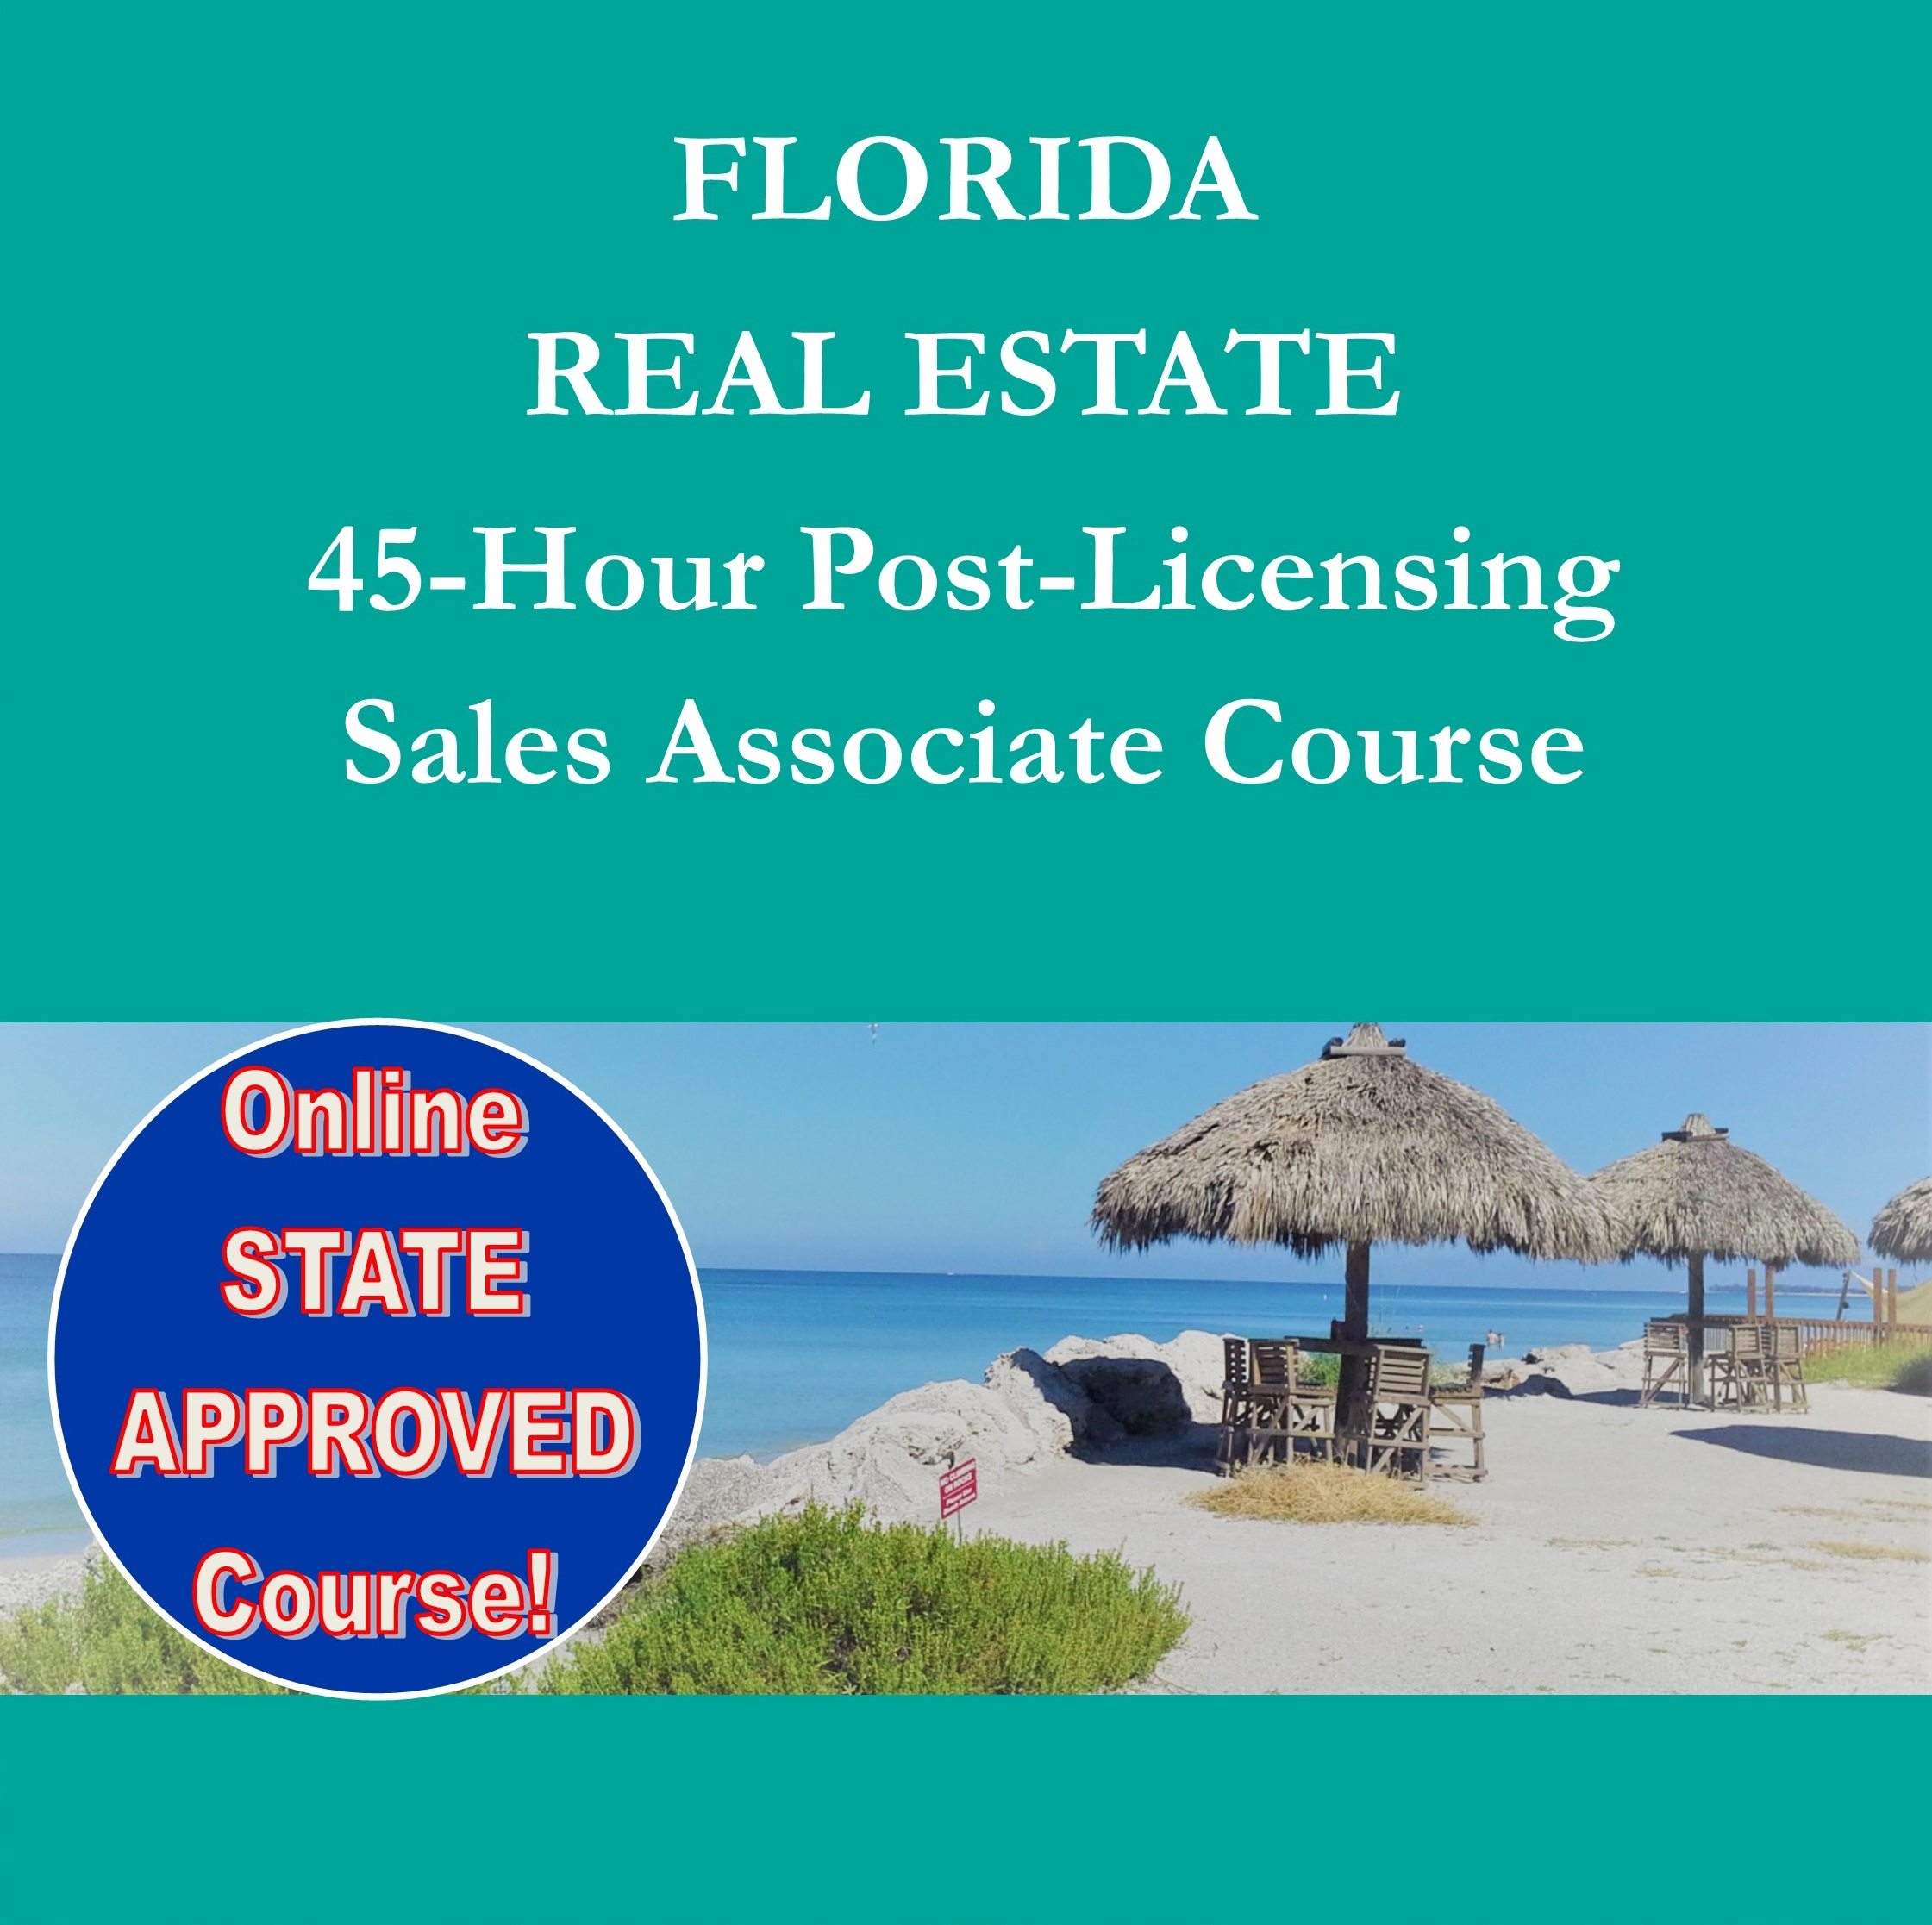 Florida Real Estate 45 Hr Post Licensing Course